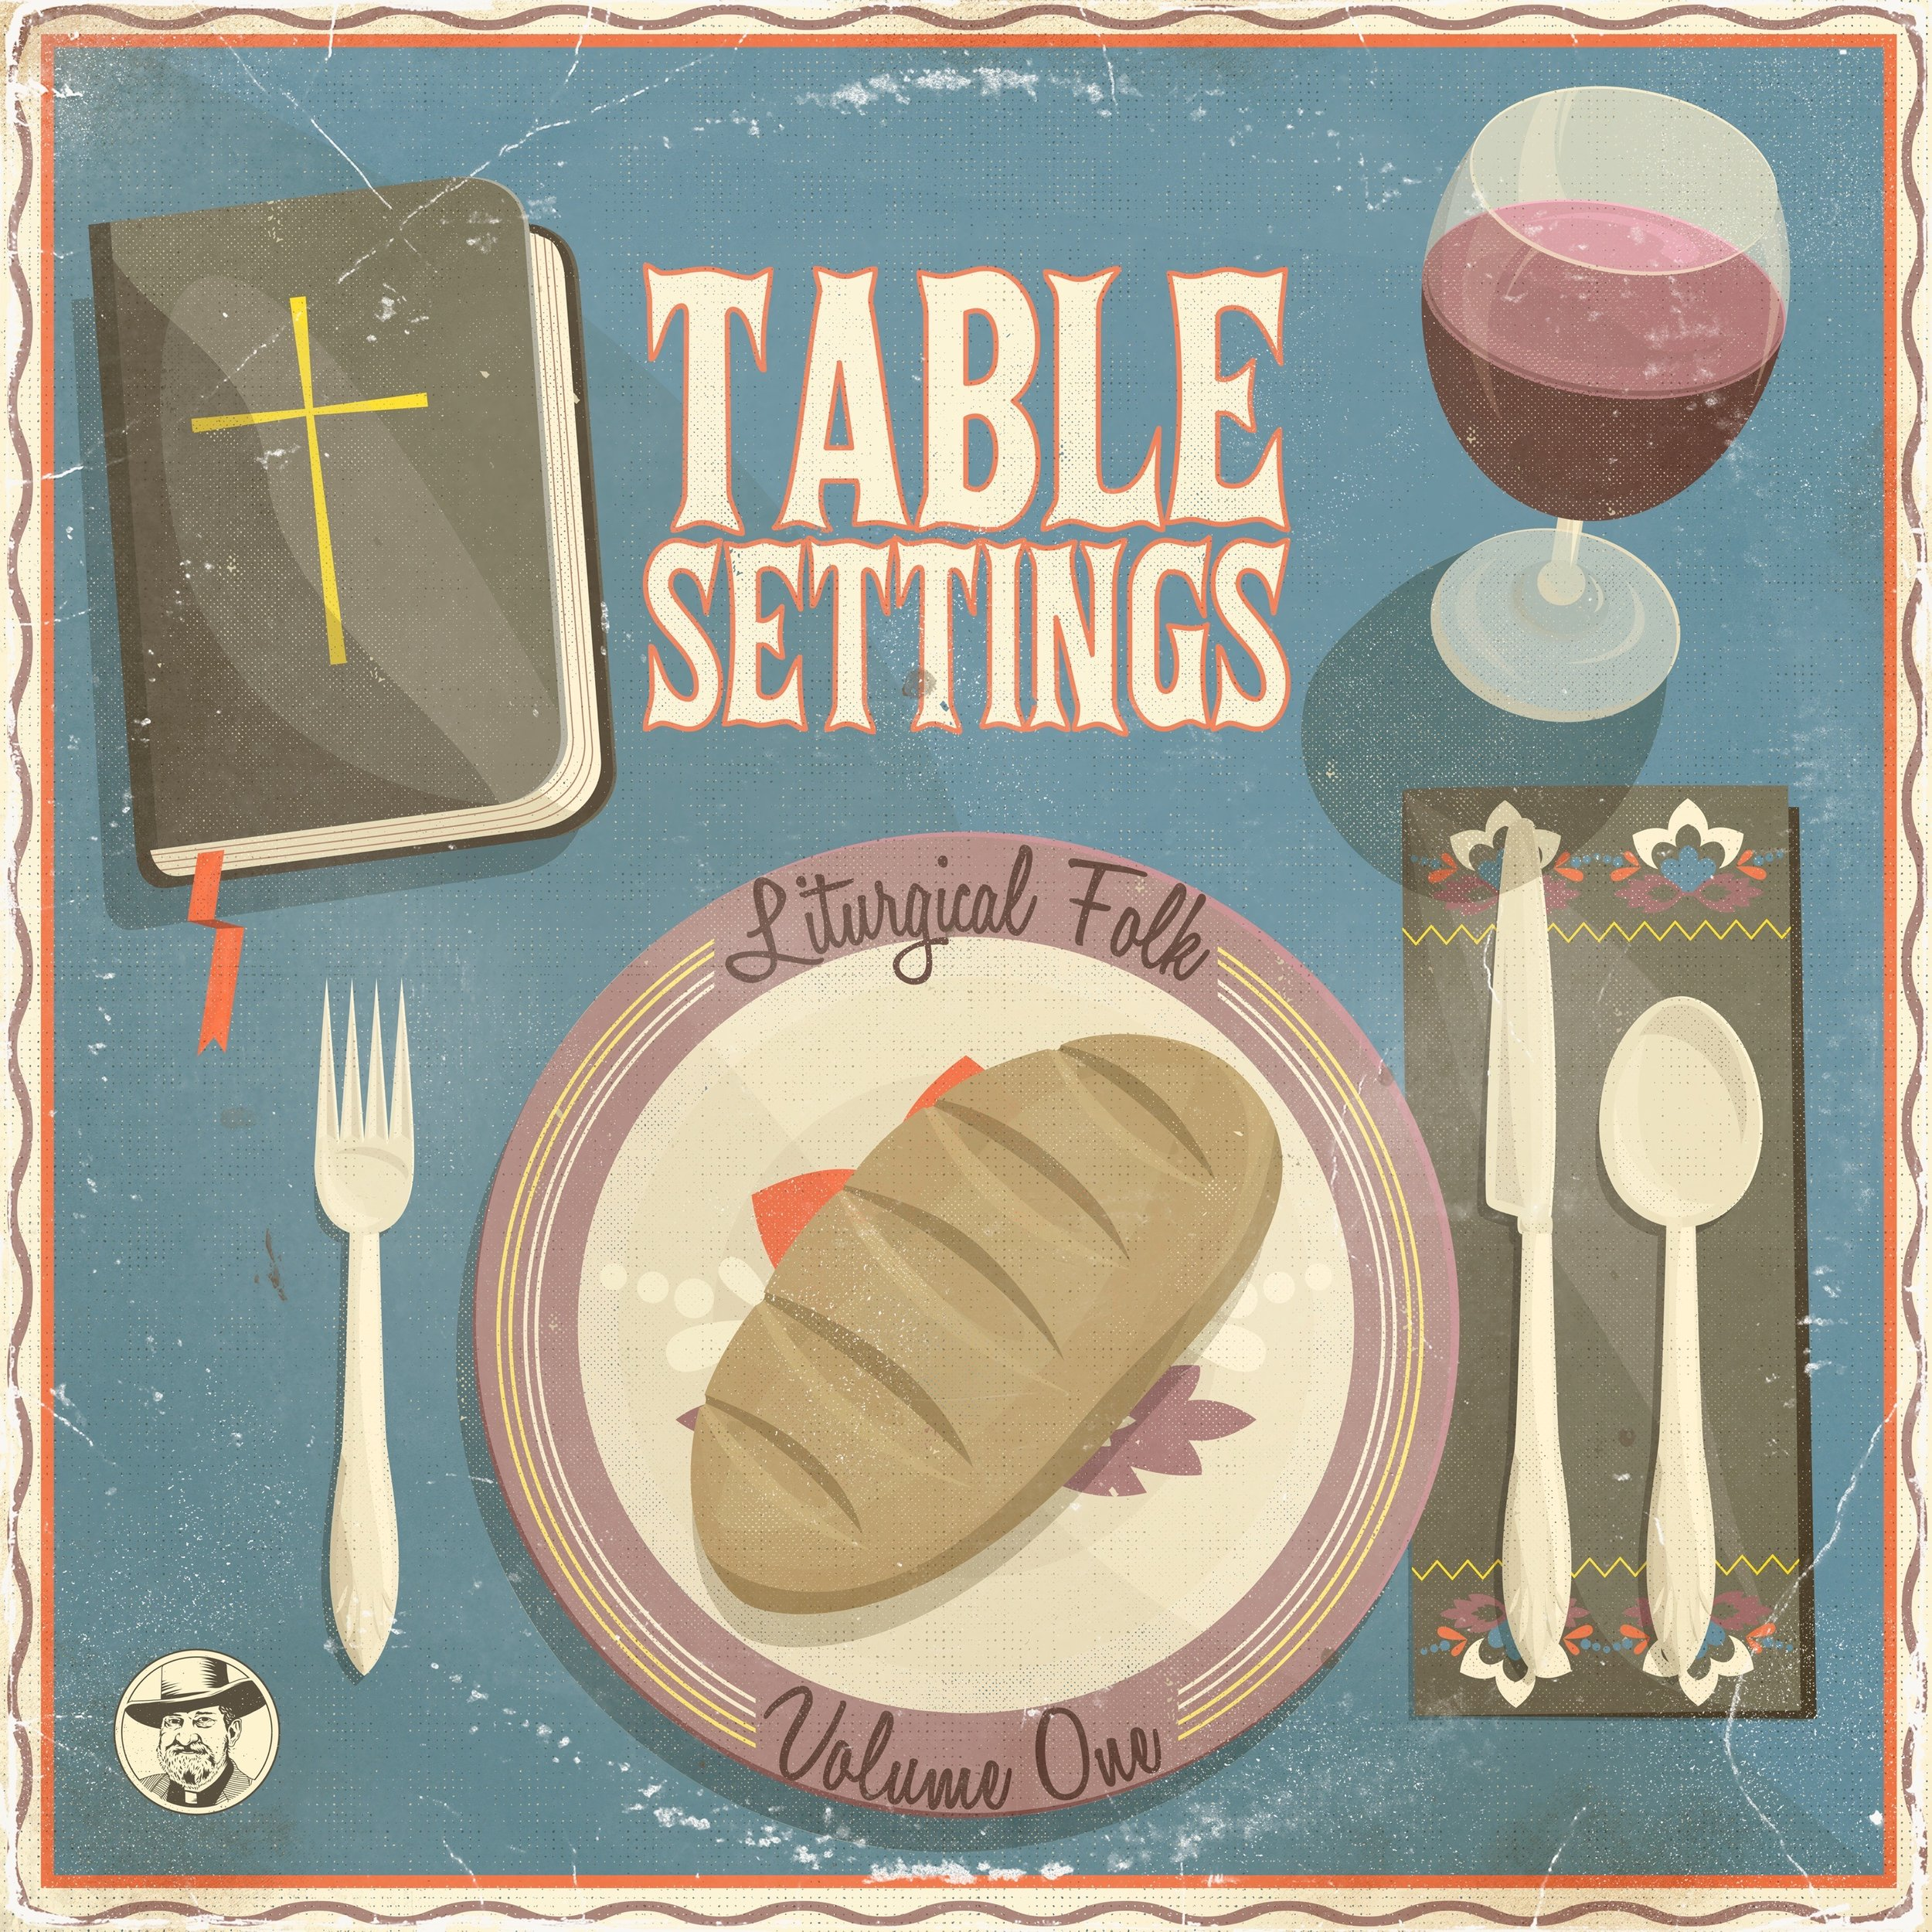 Table Settings Cover Art.jpeg